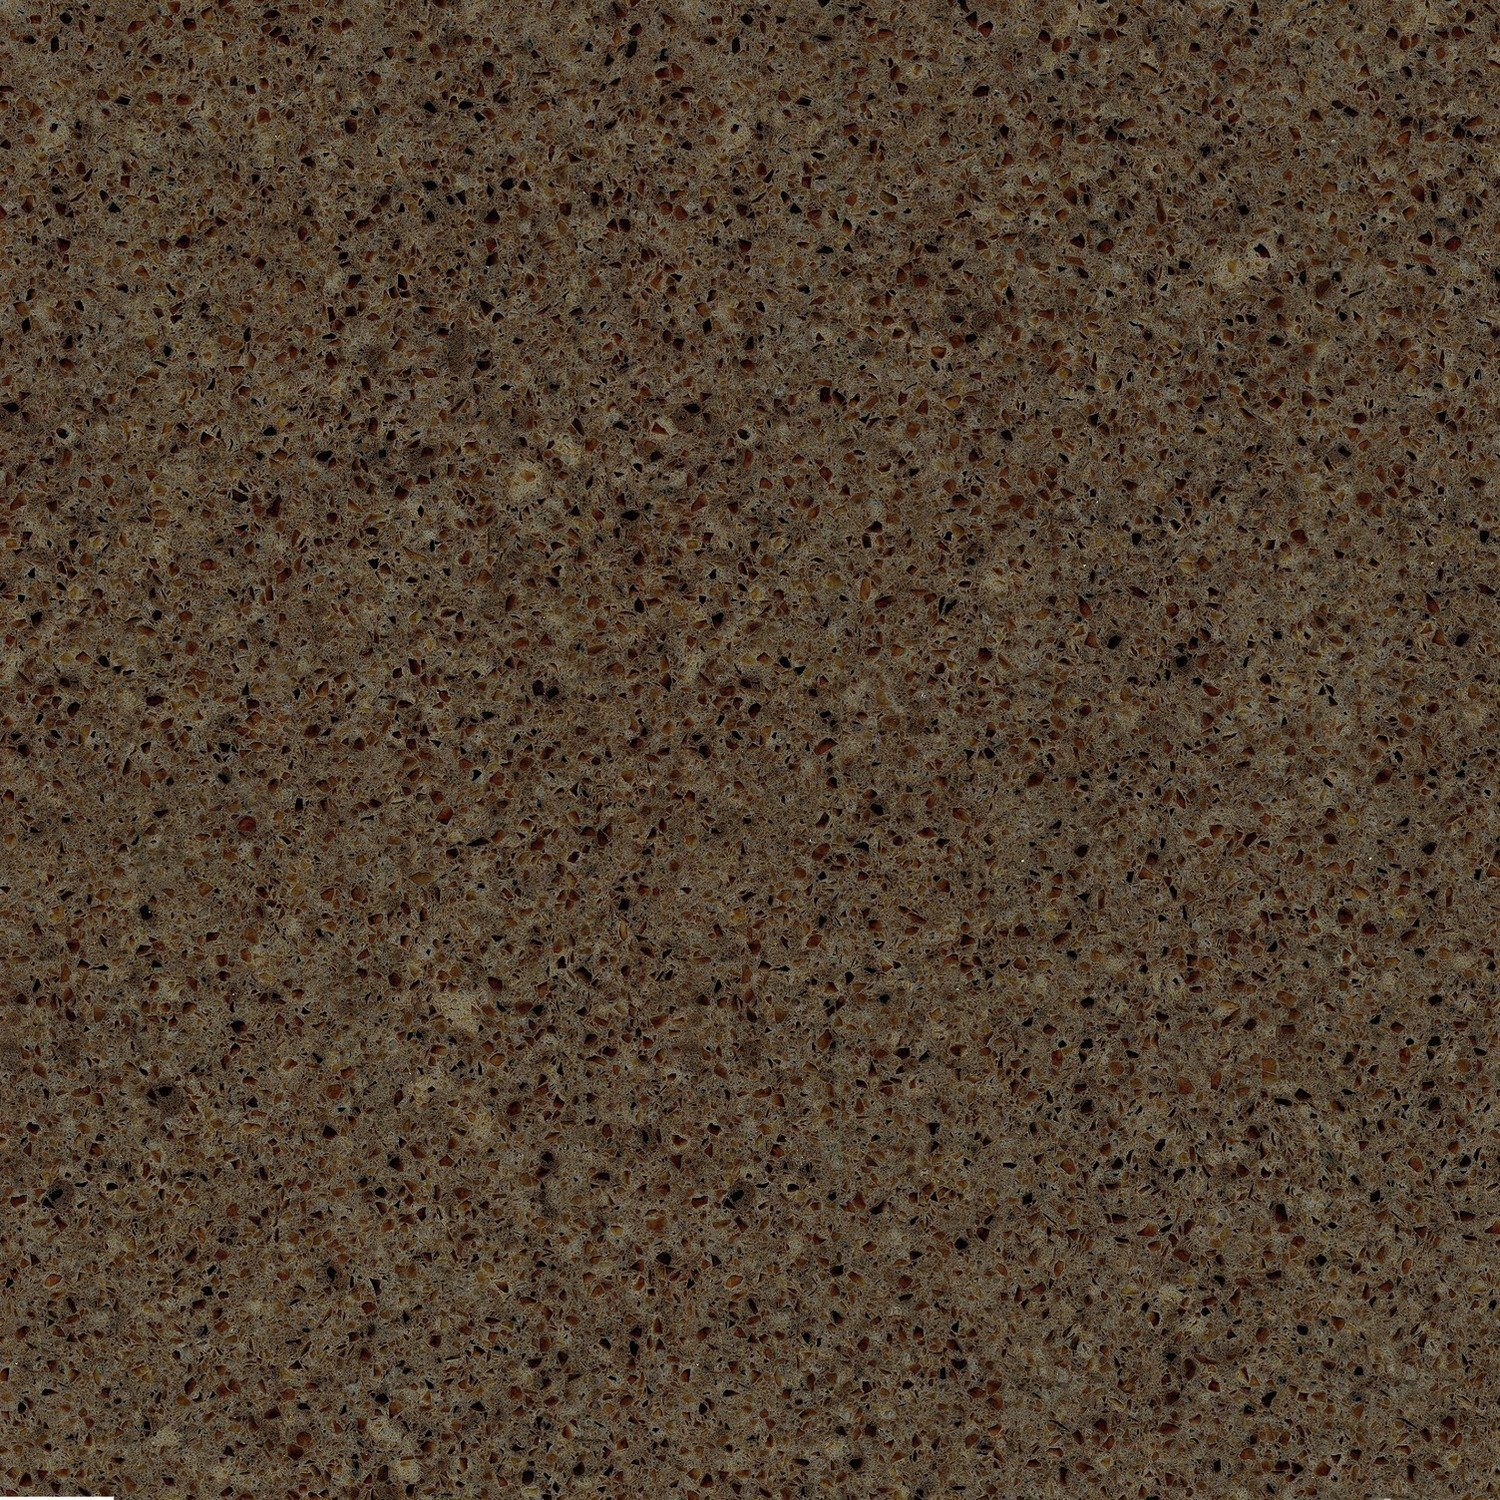 Corian Quartz - Warm Taupe